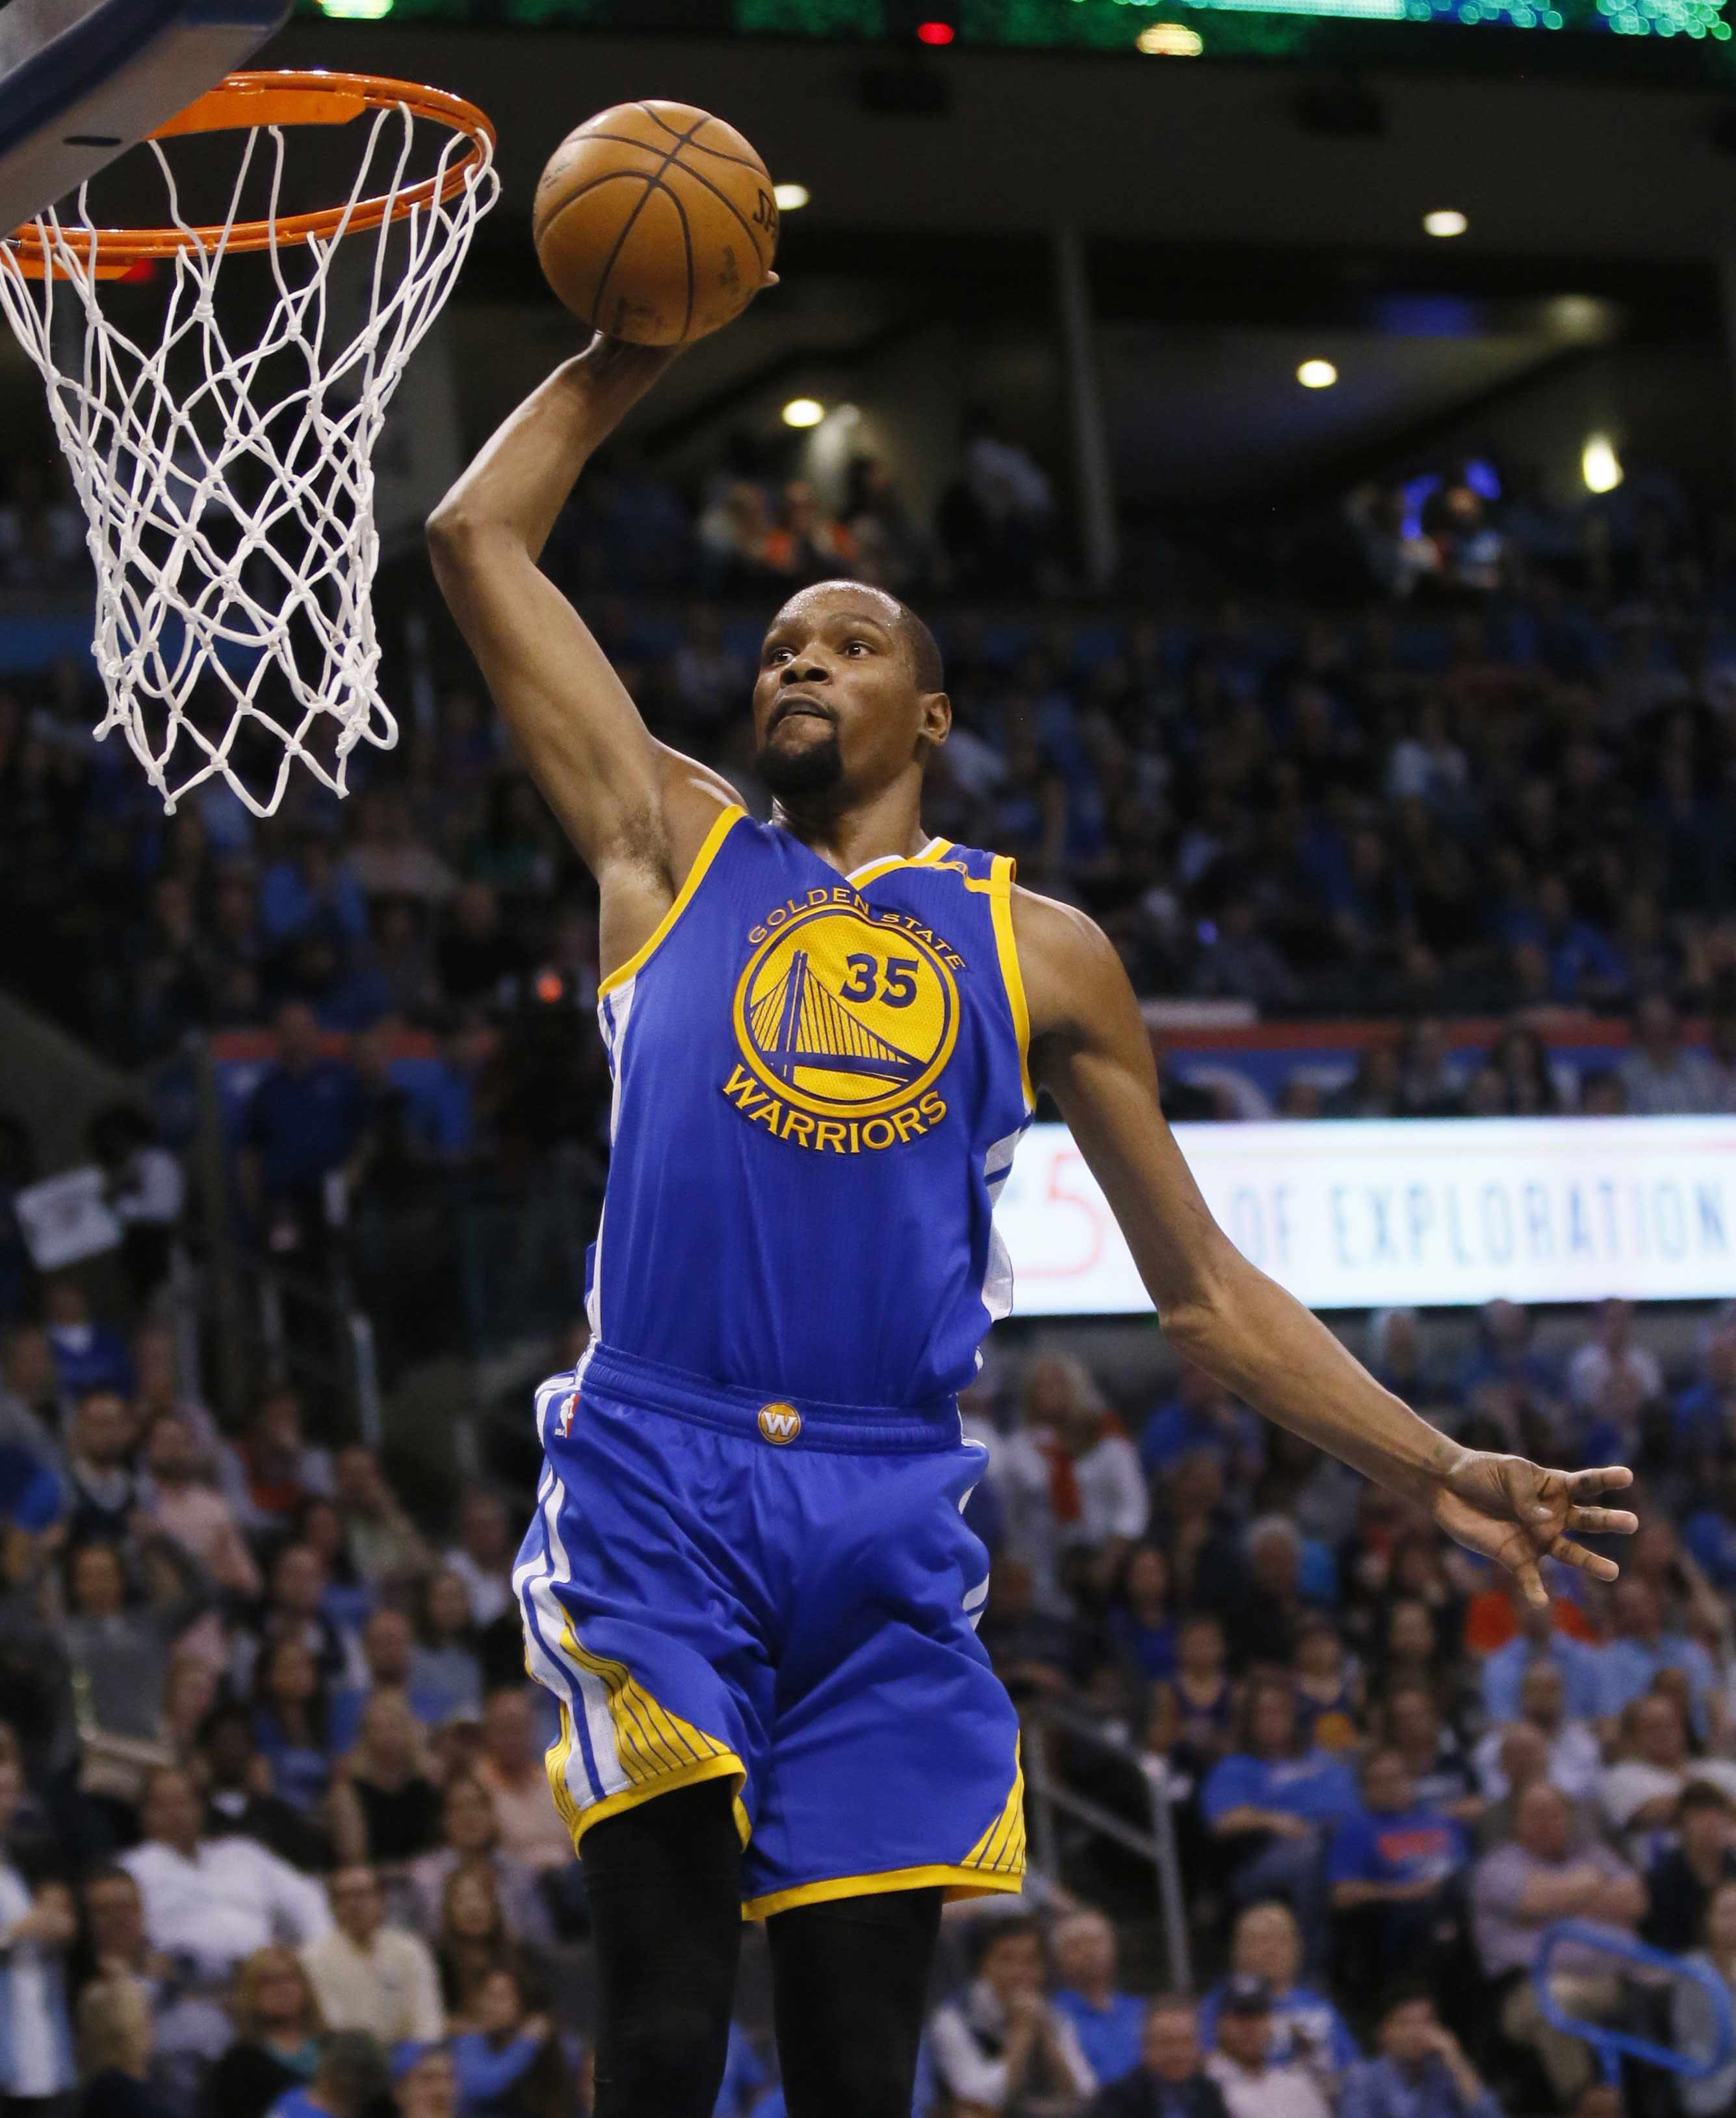 durant cleared to resume practice after knee injury